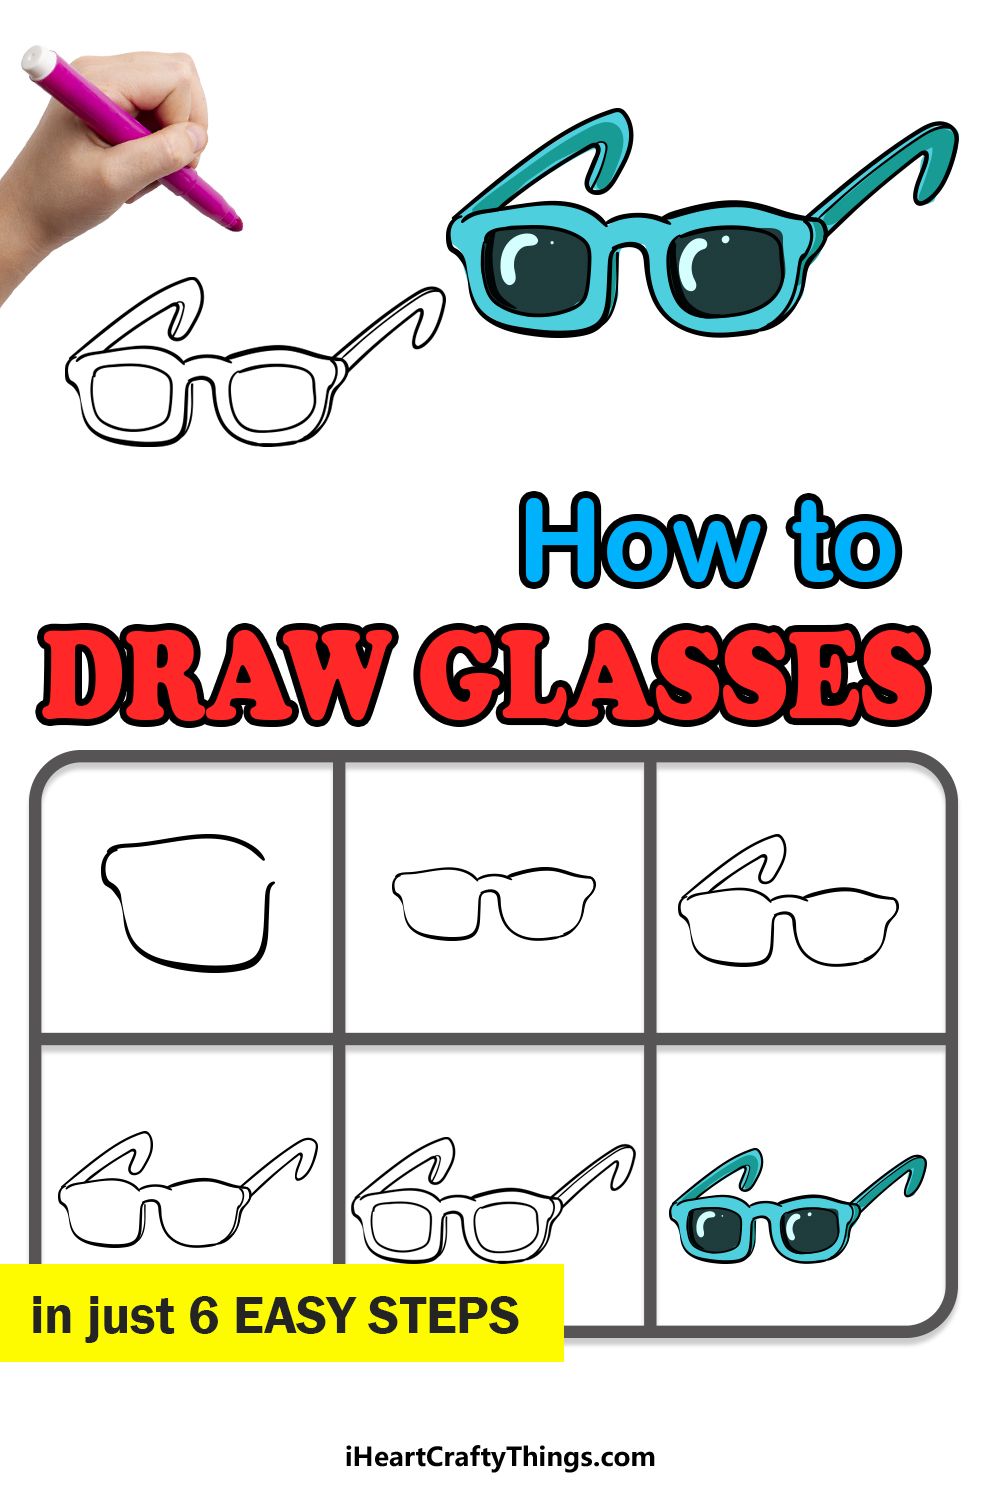 how to draw glasses in 6 easy steps